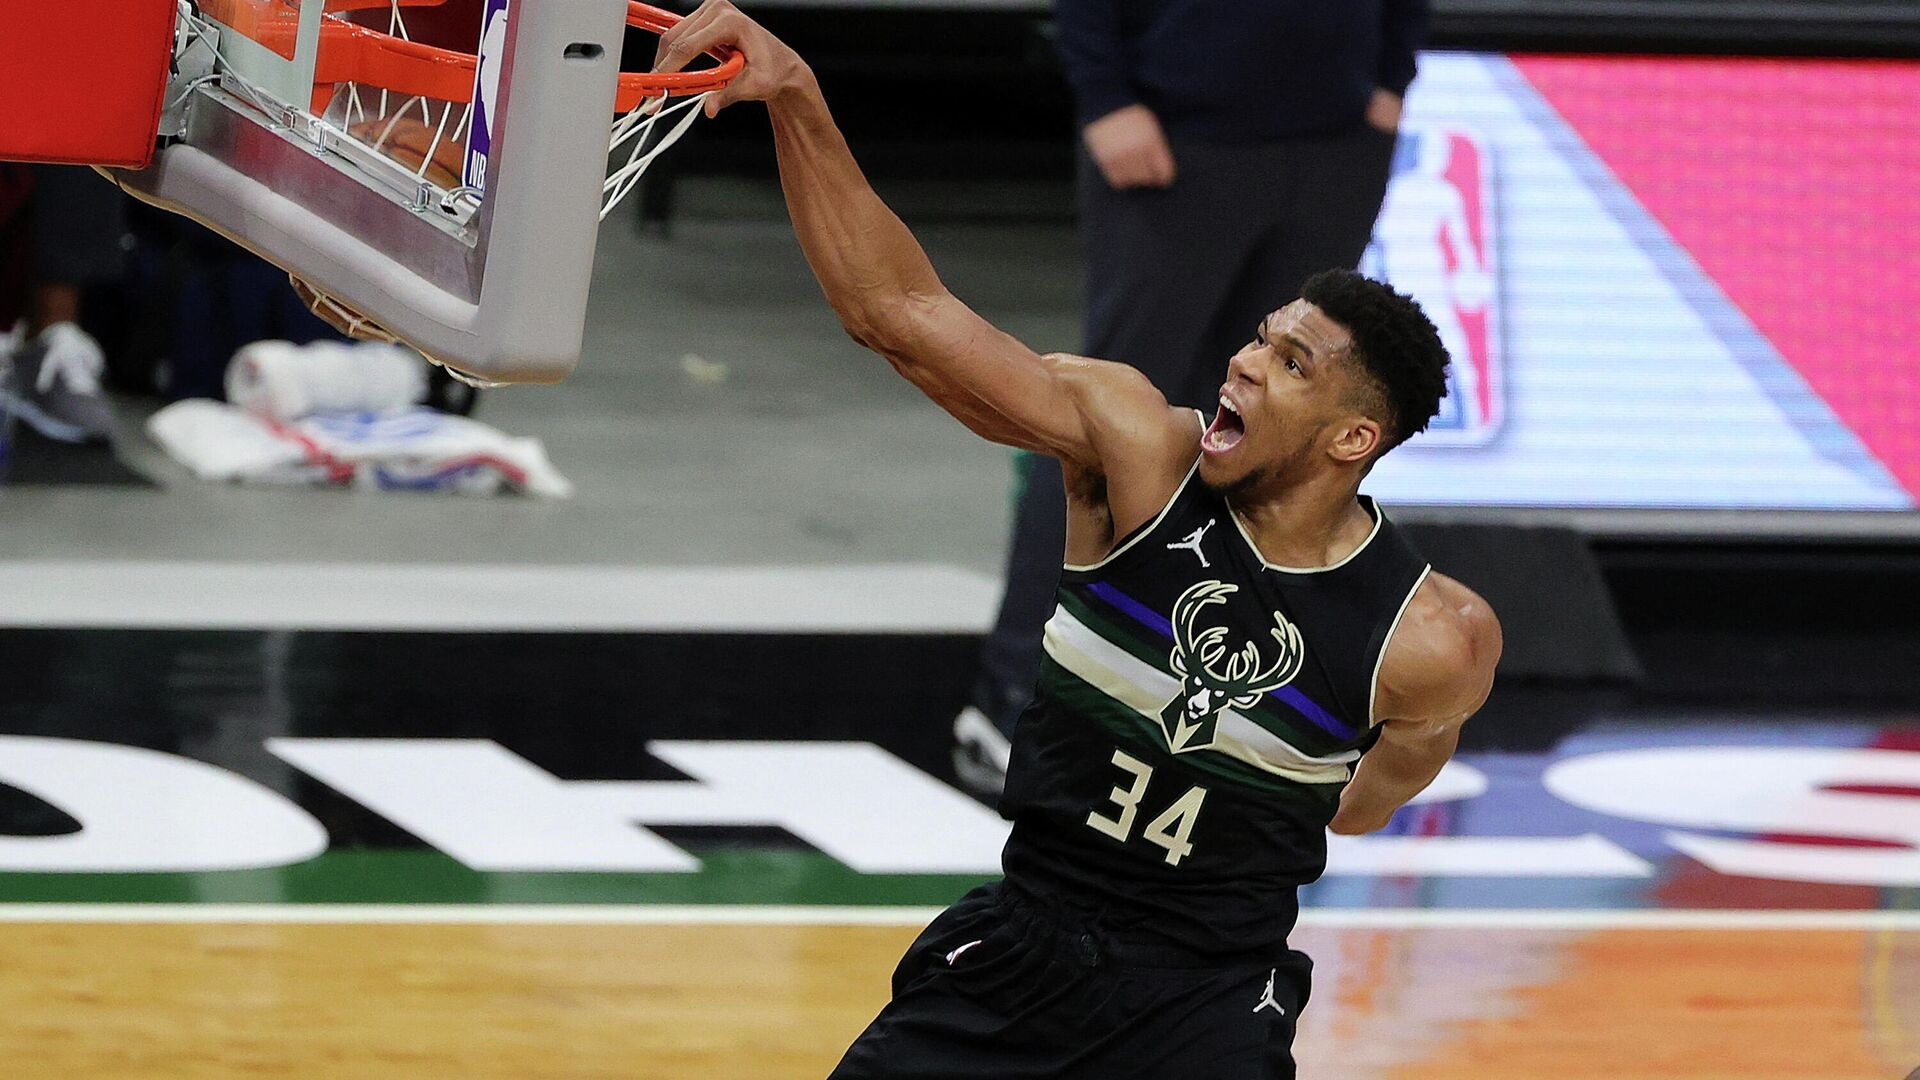 MILWAUKEE, WISCONSIN - FEBRUARY 28: Giannis Antetokounmpo #34 of the Milwaukee Bucks dunks during the second half of a game against the LA Clippers at Fiserv Forum on February 28, 2021 in Milwaukee, Wisconsin. NOTE TO USER: User expressly acknowledges and agrees that, by downloading and or using this photograph, User is consenting to the terms and conditions of the Getty Images License Agreement.   Stacy Revere/Getty Images/AFP (Photo by Stacy Revere / GETTY IMAGES NORTH AMERICA / Getty Images via AFP) - РИА Новости, 1920, 02.03.2021